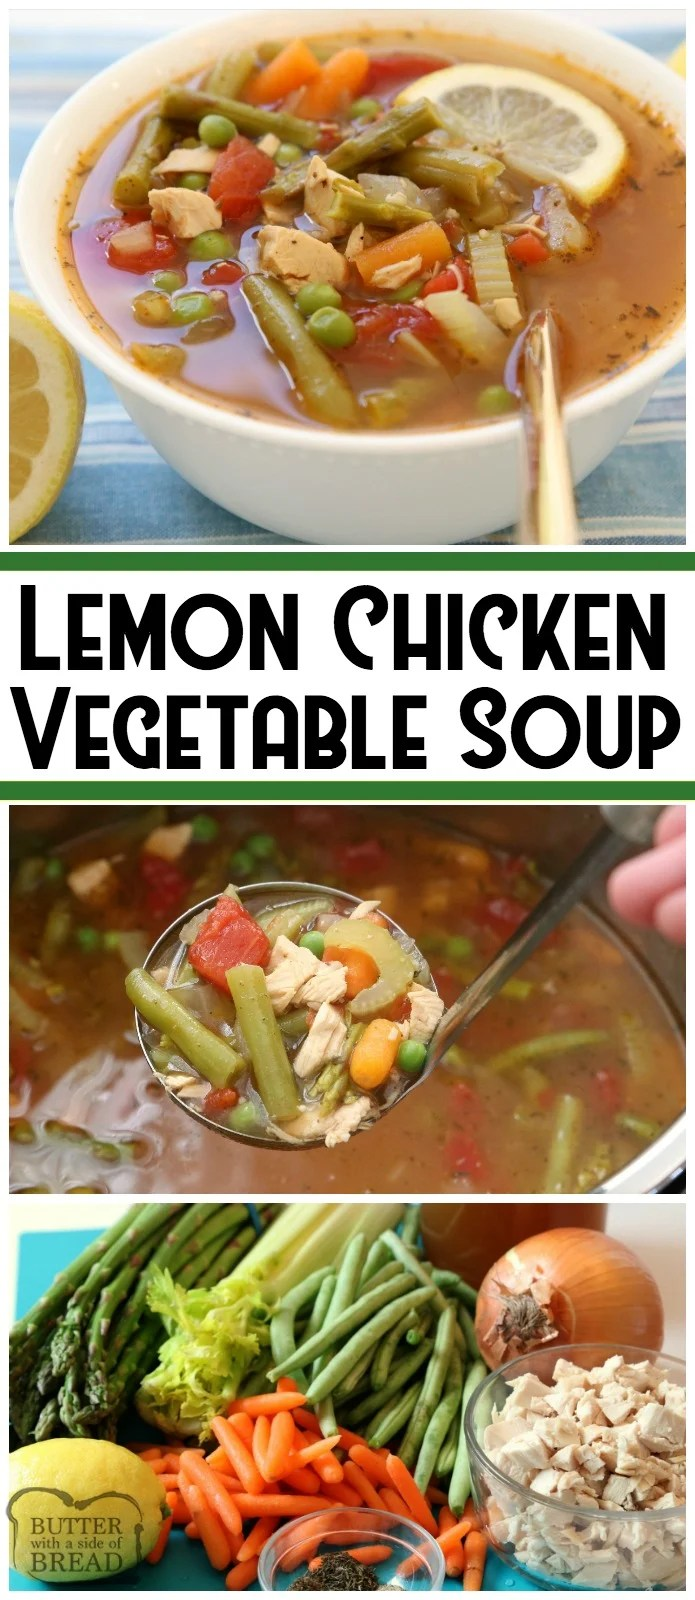 Lemon Chicken Vegetable Soup is a light & delicious broth-based vegetable soup recipe with the addition of tender chicken and fresh lemon. Chocked full of fresh vegetables like green beans, asparagus, carrots and tomatoes. Perfect for the cool days of early Spring, or anytime really! Easy #Lemon #chicken #vegetable #soup #recipe from Butter With A Side of Bread #instantpot #food #dinner #healthy